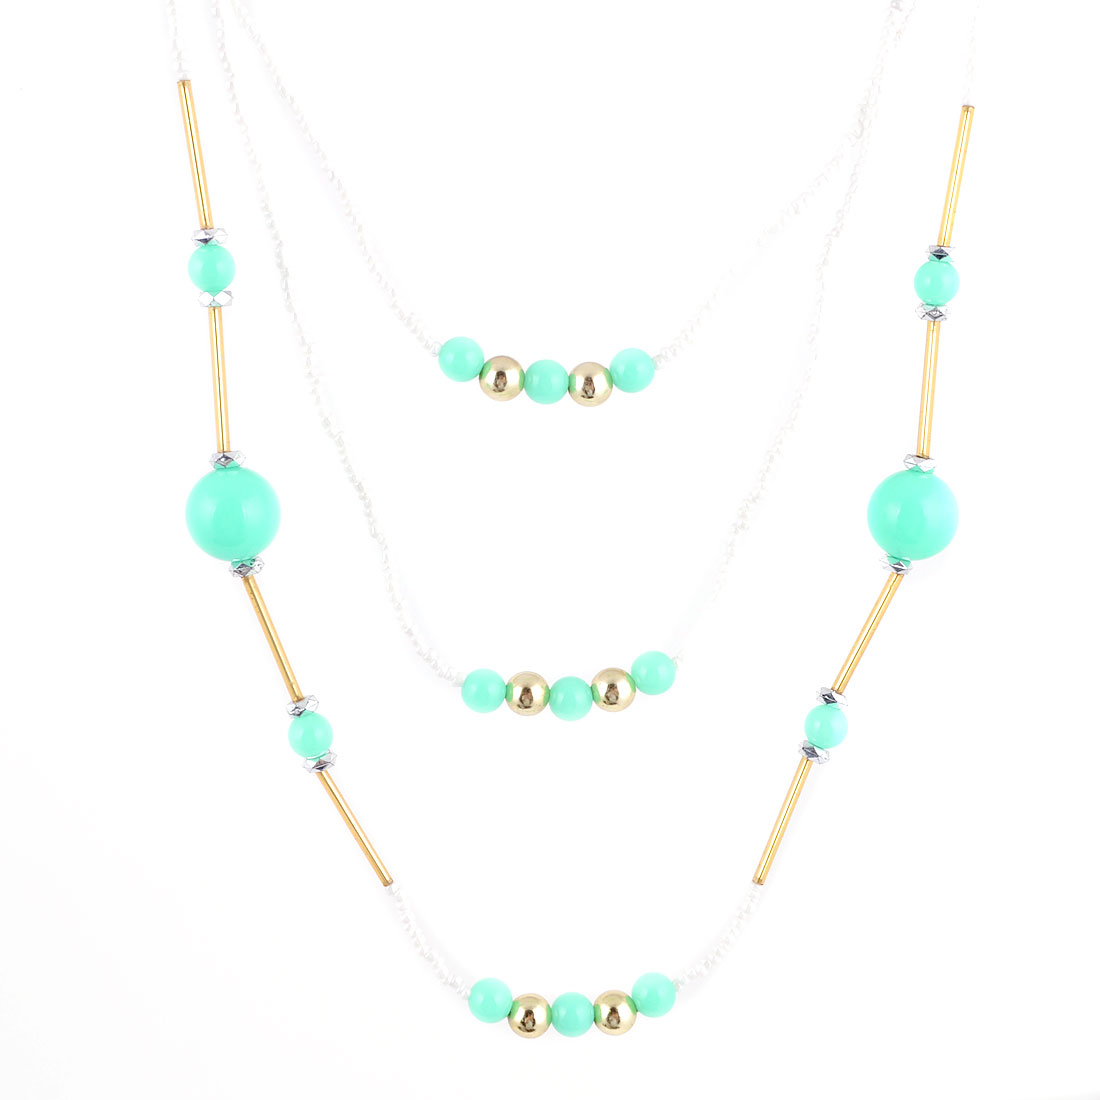 Ladies Cyan White Plastic Beads Decor 3 Layers Sweater Necklace